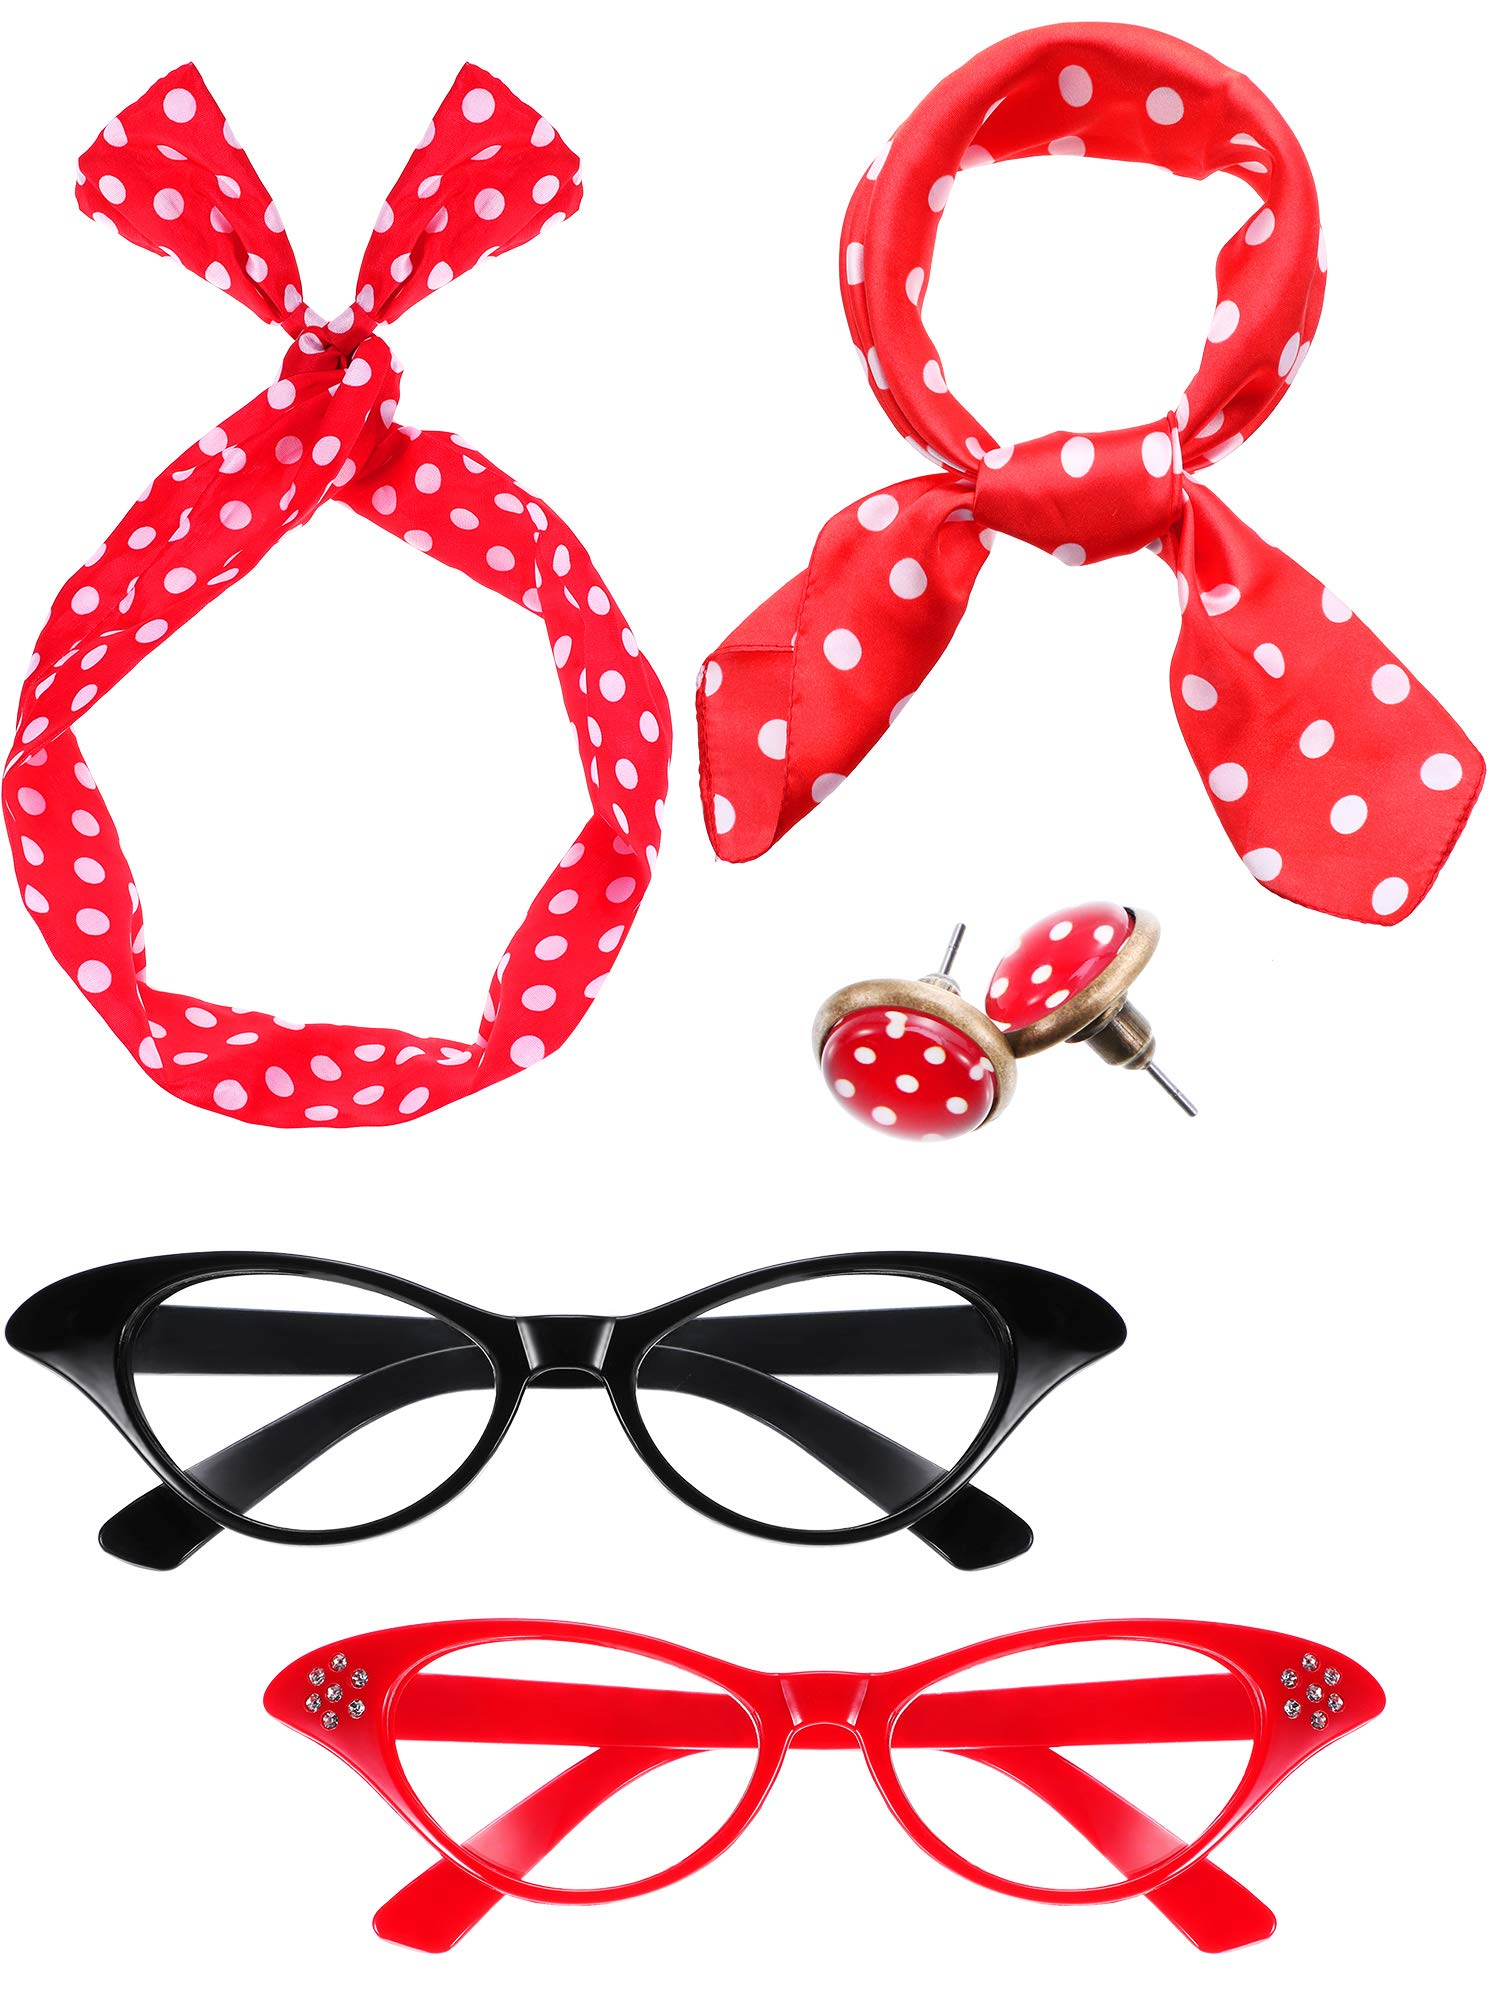 Blulu Women 50's Costume Accessories Set, Include 2 Pairs Cat Eye Glasses, Bandana Scarf, Wave Points Headband and Earrings (Red and Black)